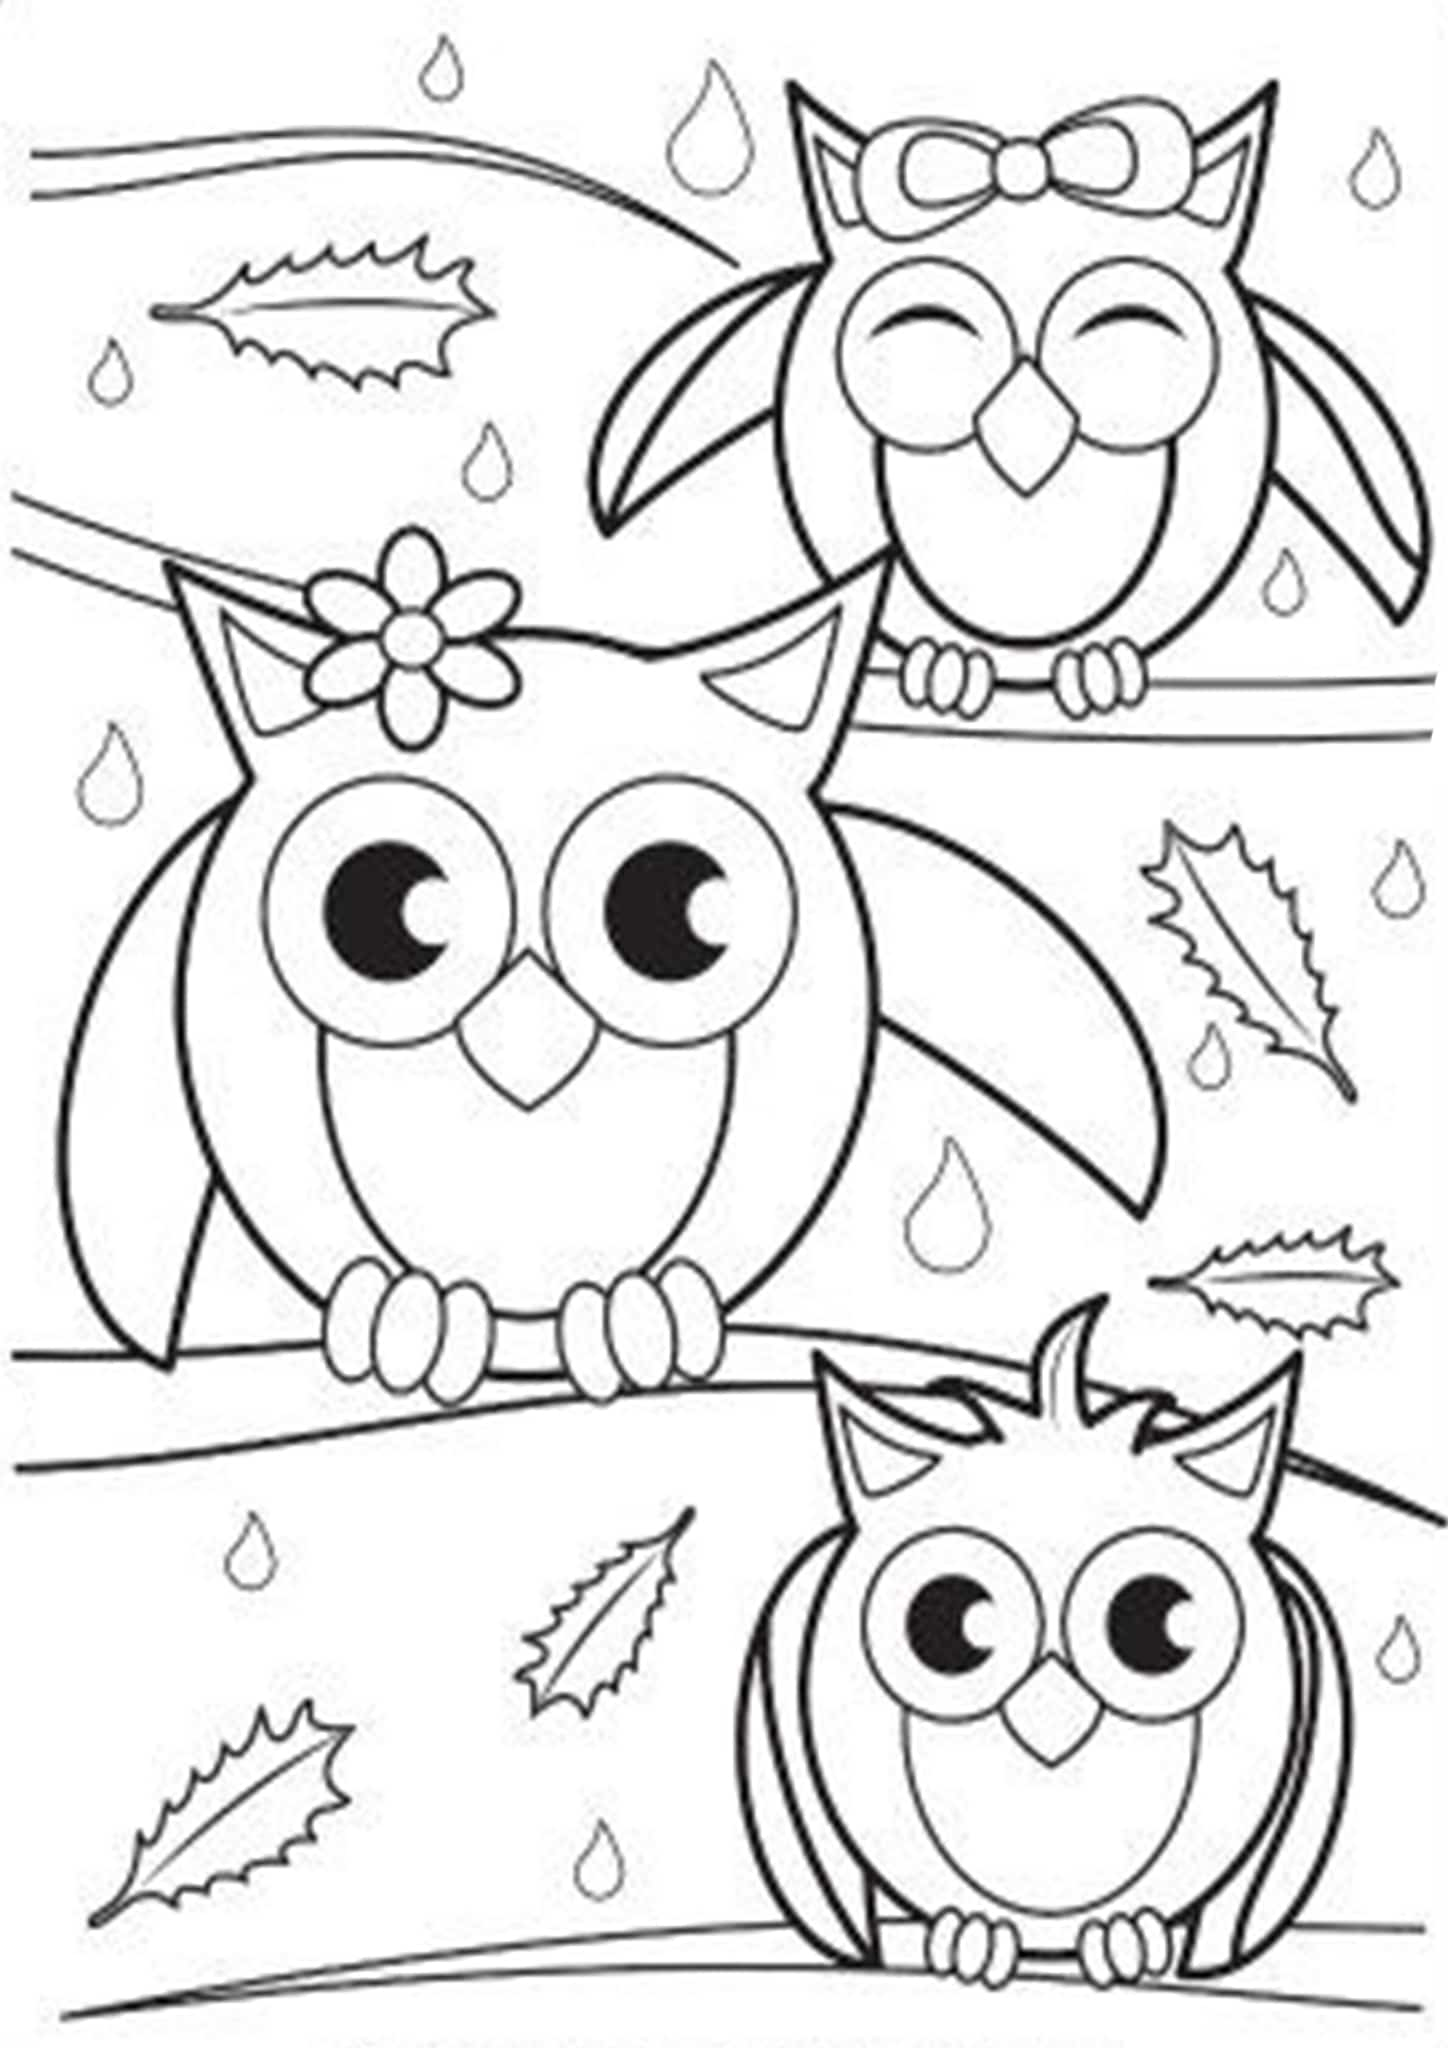 a coloring picture free printable tangled coloring pages for kids a picture coloring